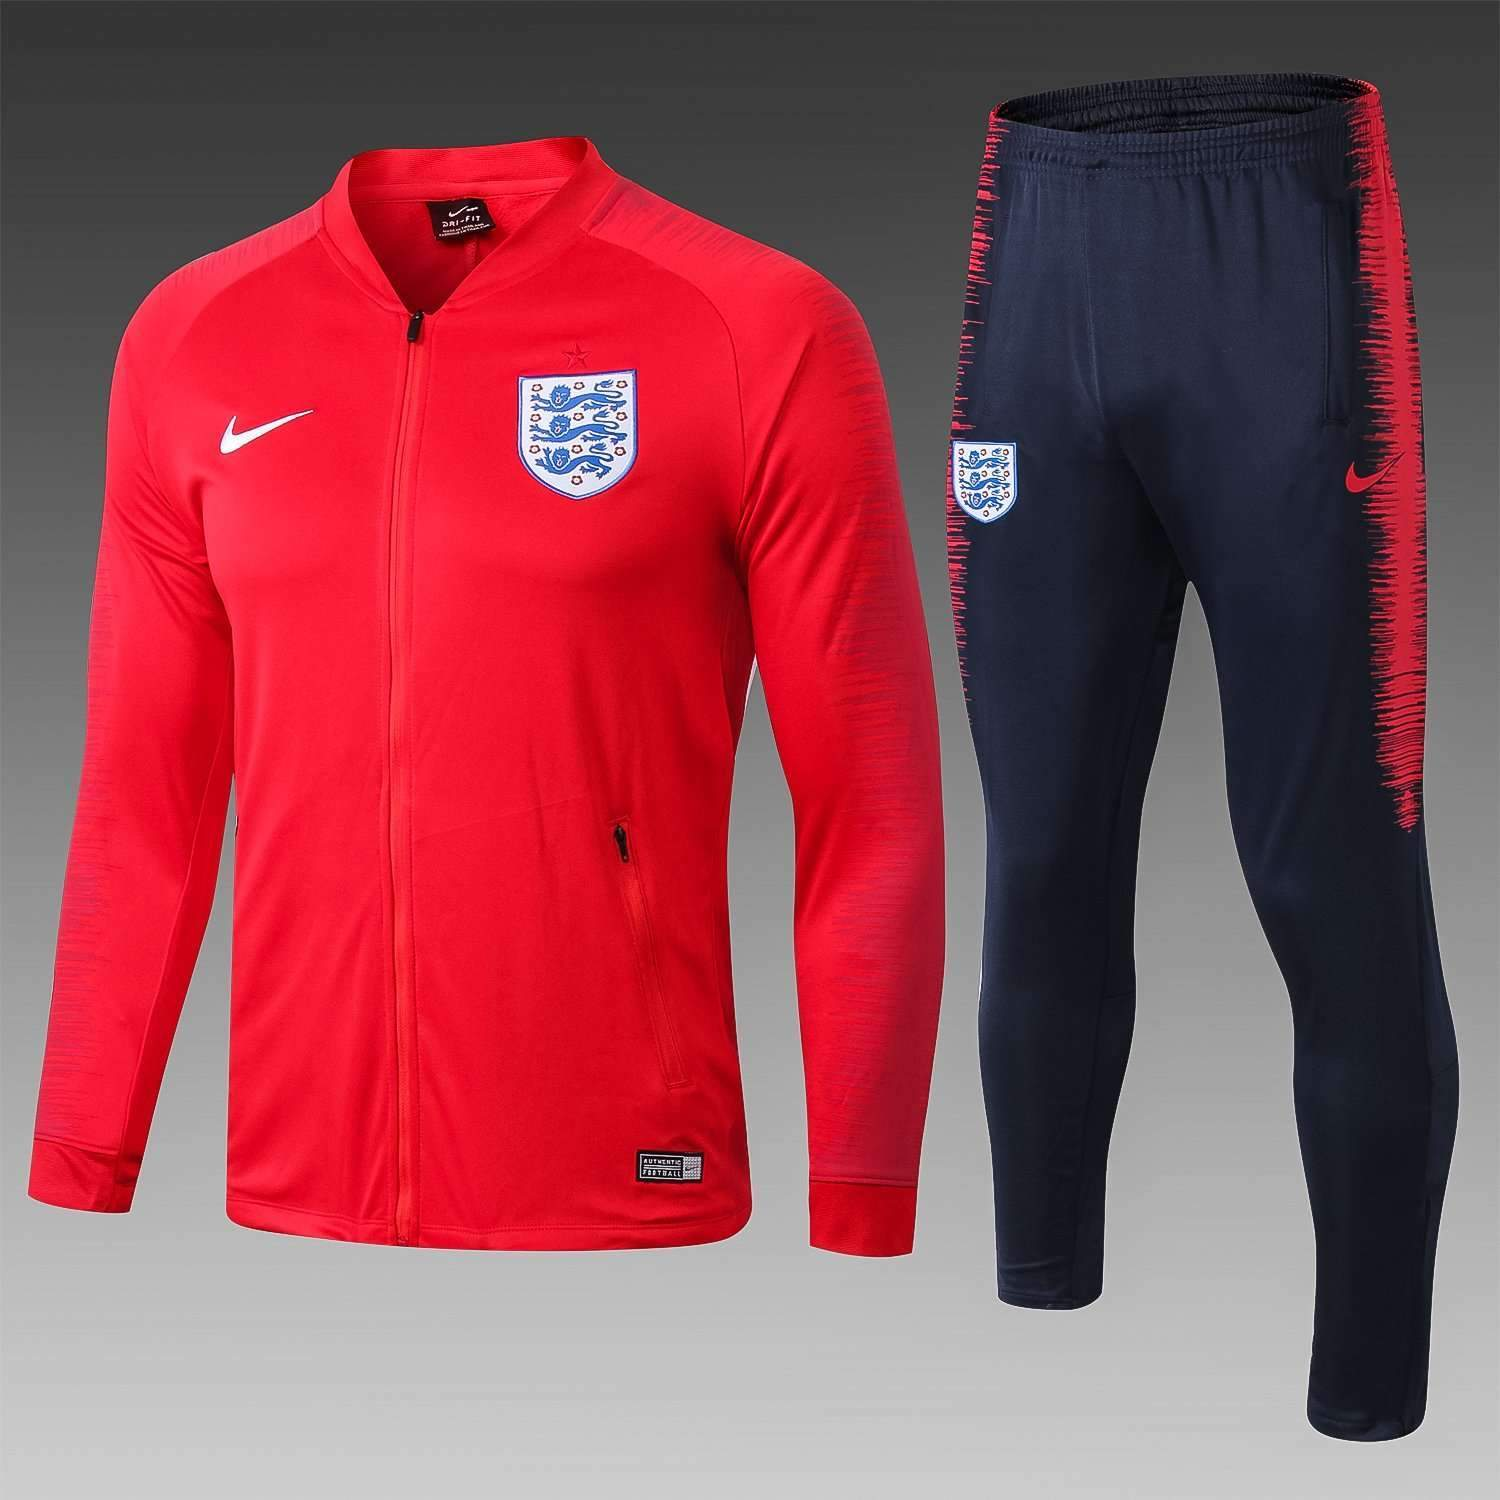 new product 1405a 6c127 England national football team Nike Red 2018-19 Pre-Match Replica TRAINING  Zip Casual TOPS TRACKSUIT FÚTBOL CALCIO SOCCER FUSSBALL BNWT Men's Jogging  ...